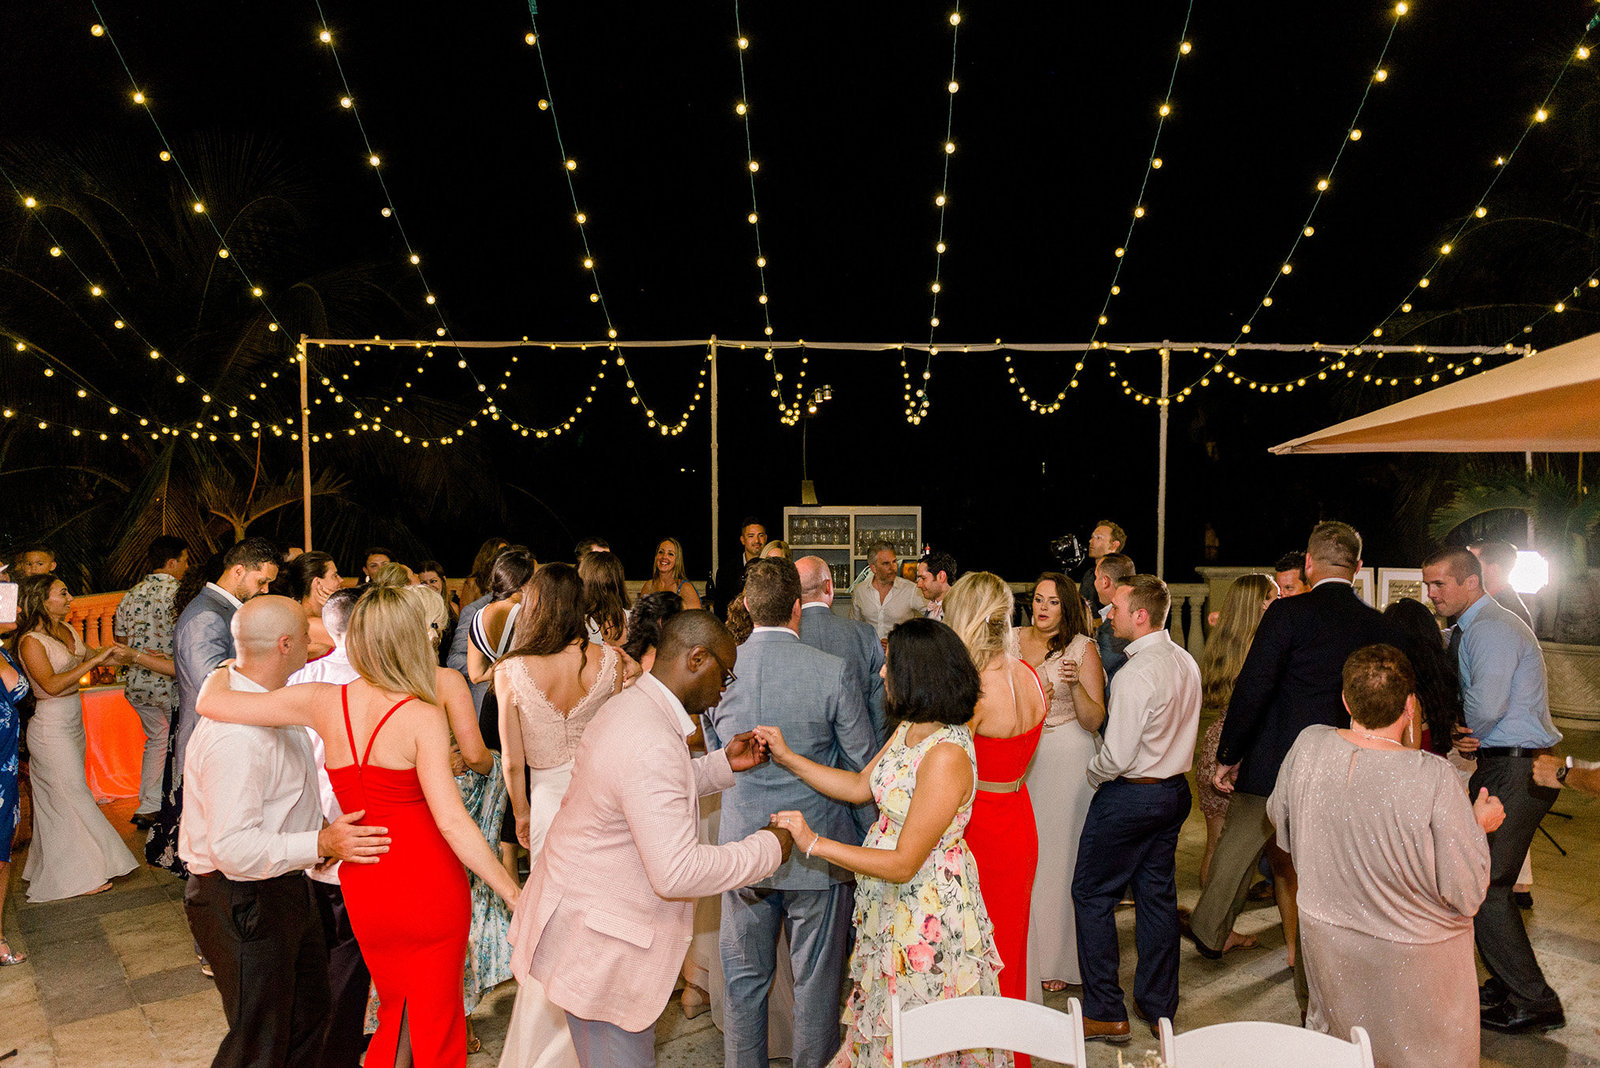 20180512-Pura-Soul-Photo-Ritz-Grand-Cayman-Wedding-141